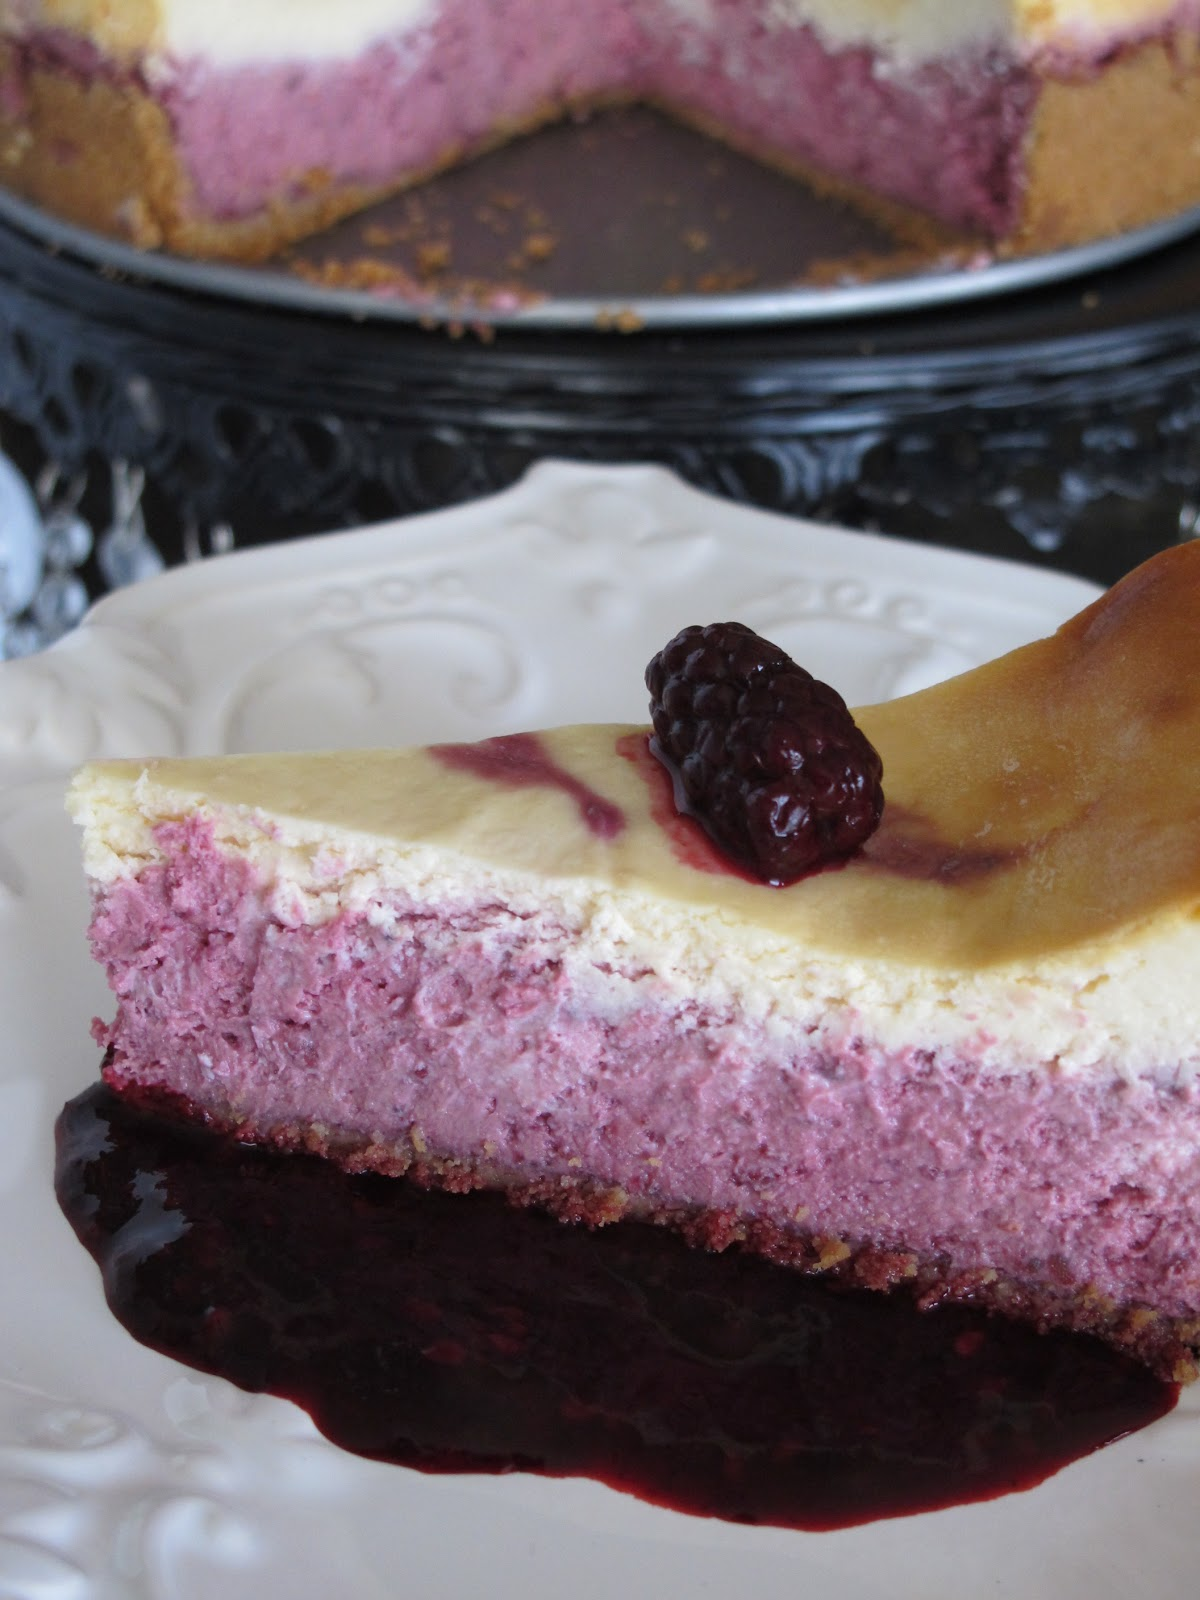 Purple Chocolat Home: Blackberry Lemon Layered Cheesecake